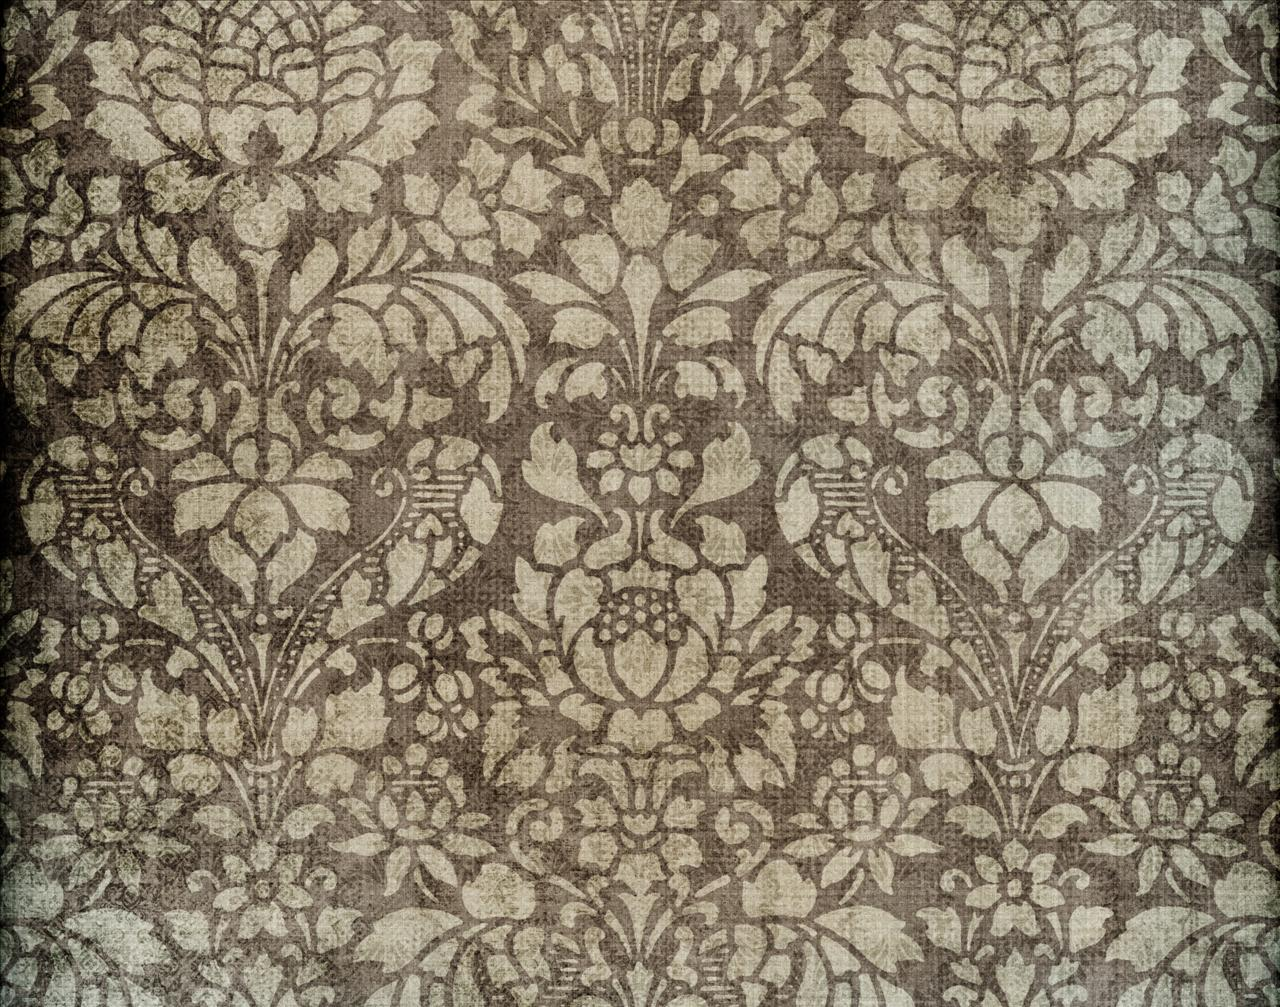 Faded brown wallpaper brown photo 28311497 fanpop for Brown wallpaper for walls